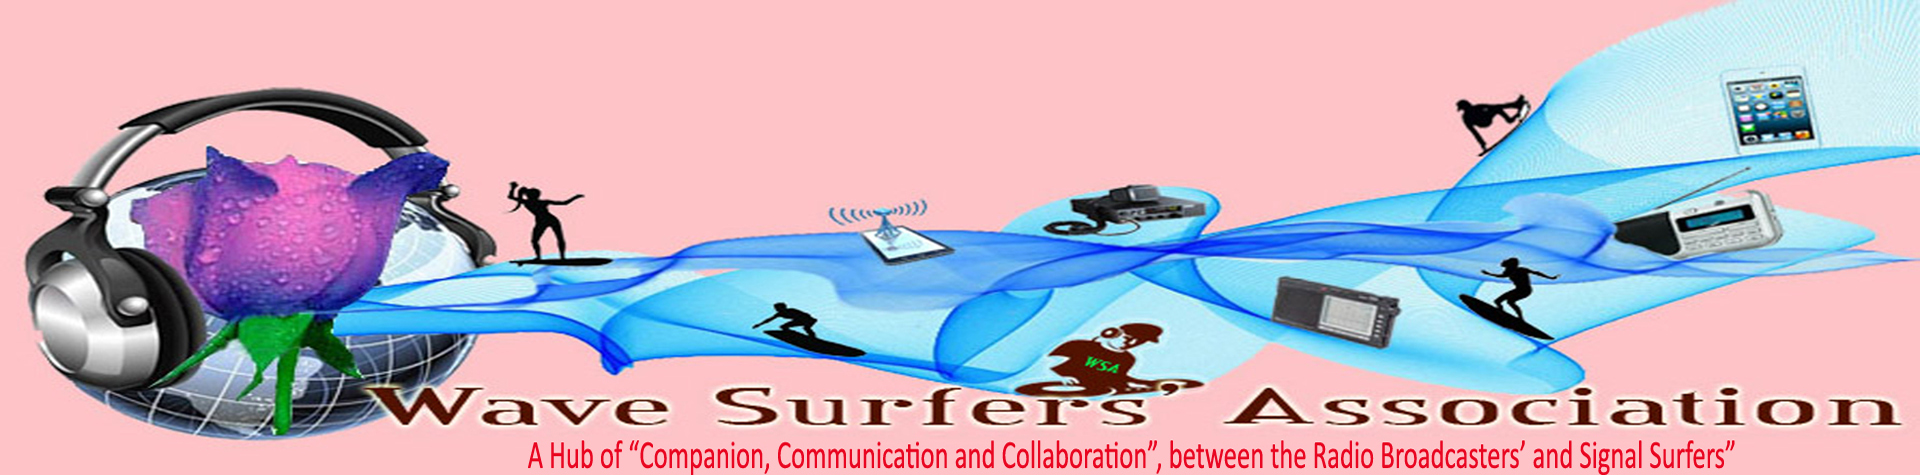 Wave Surfers' Association